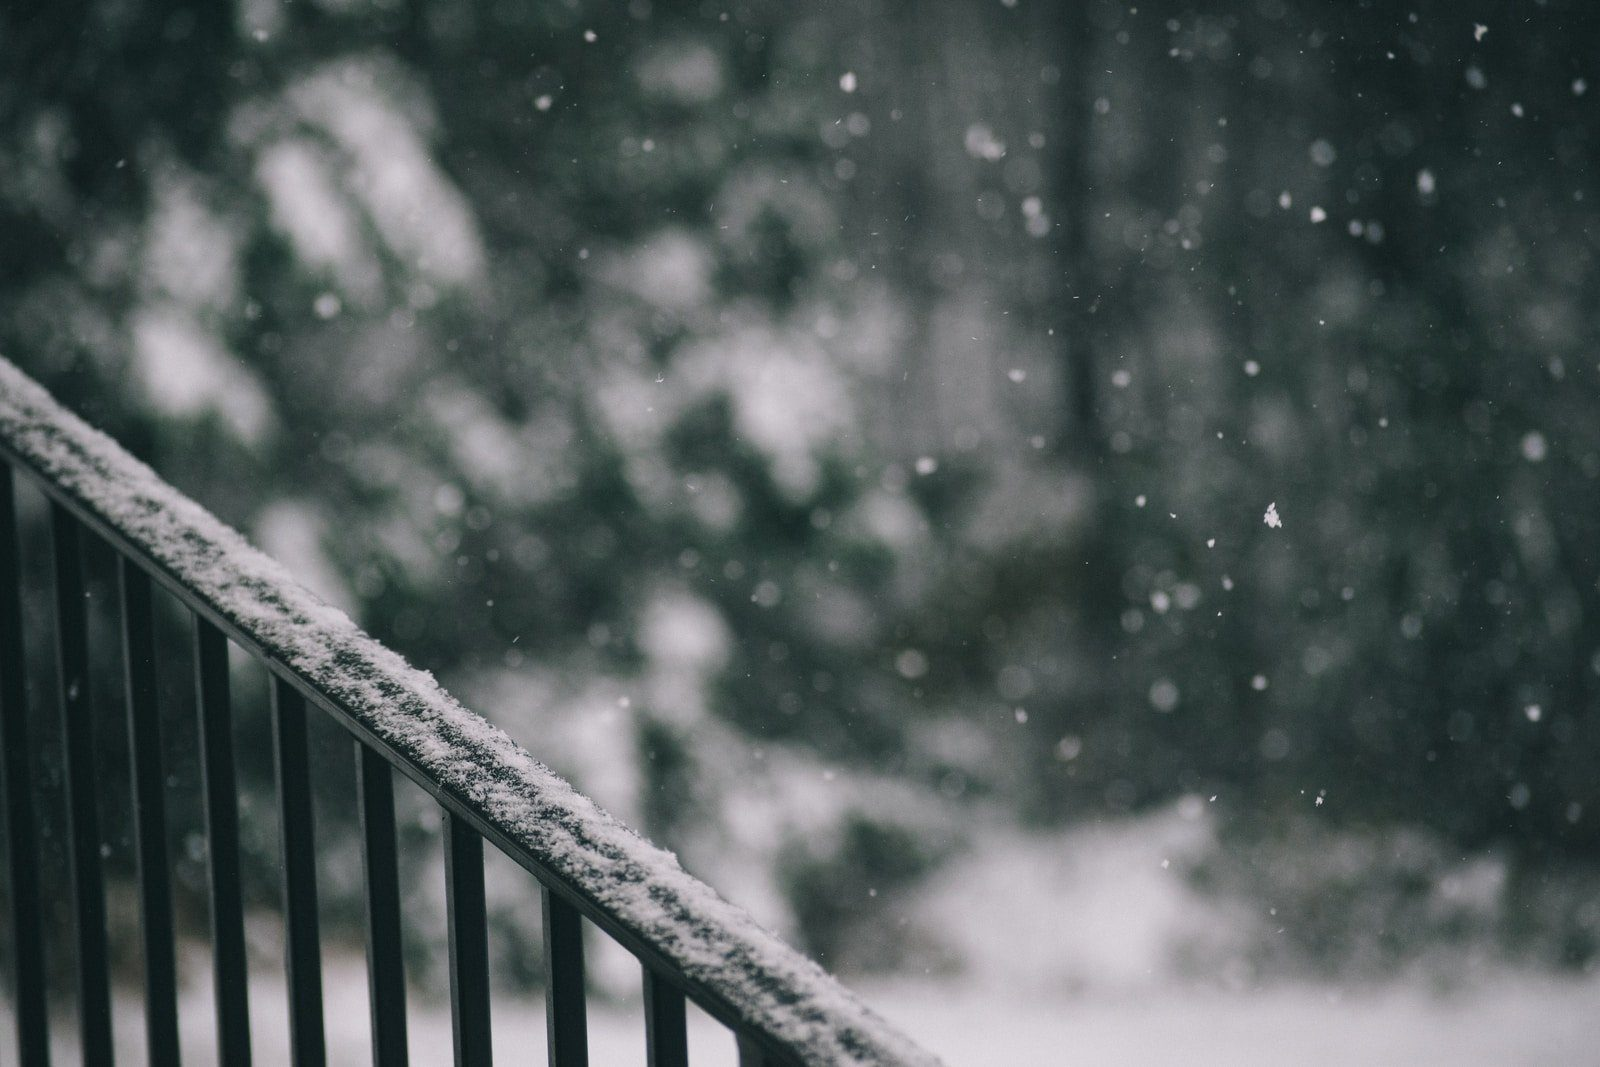 selective focus photography of falling snow on barrier